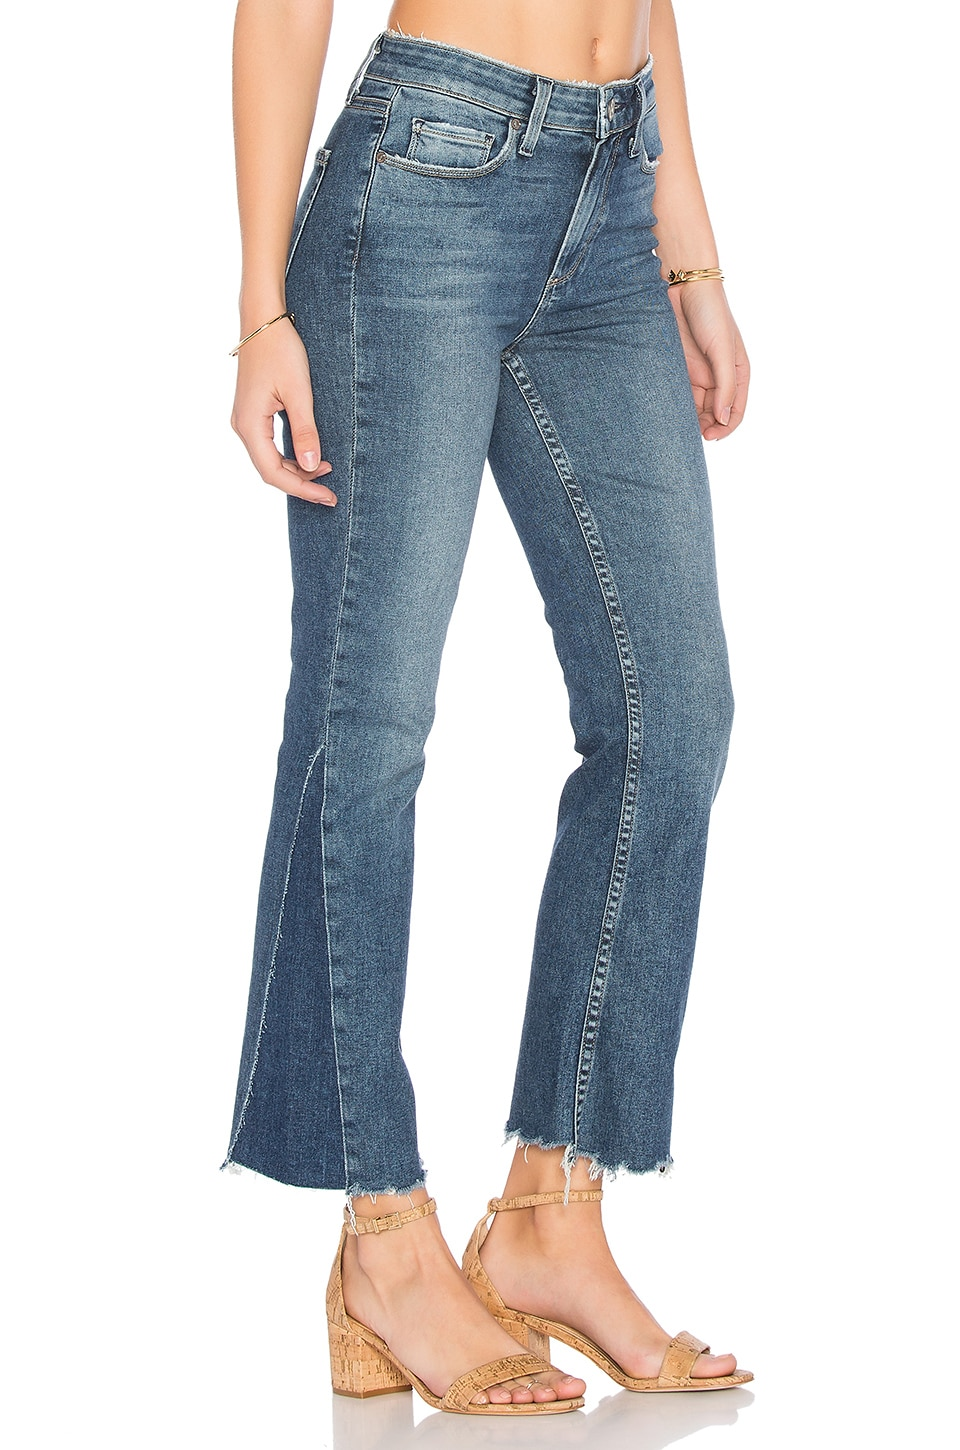 PAIGE Pieced Colette Crop Jean in Kenya Distressed